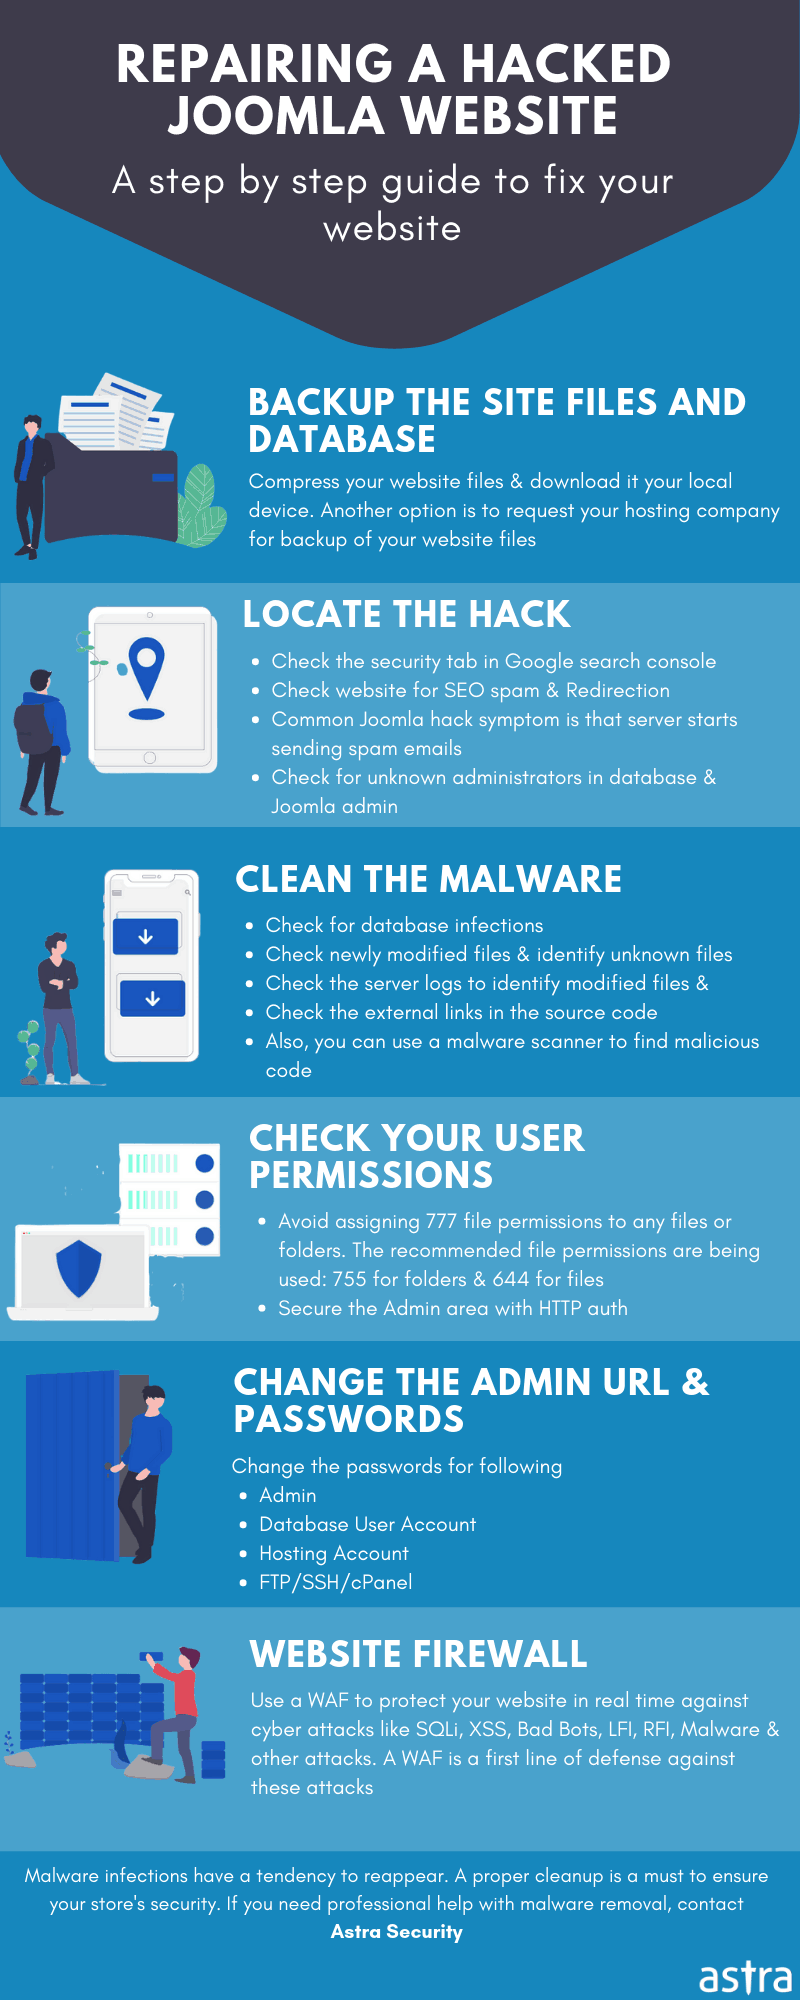 Joomla Hacked: How to Fix a Hacked Joomla Website - 2019